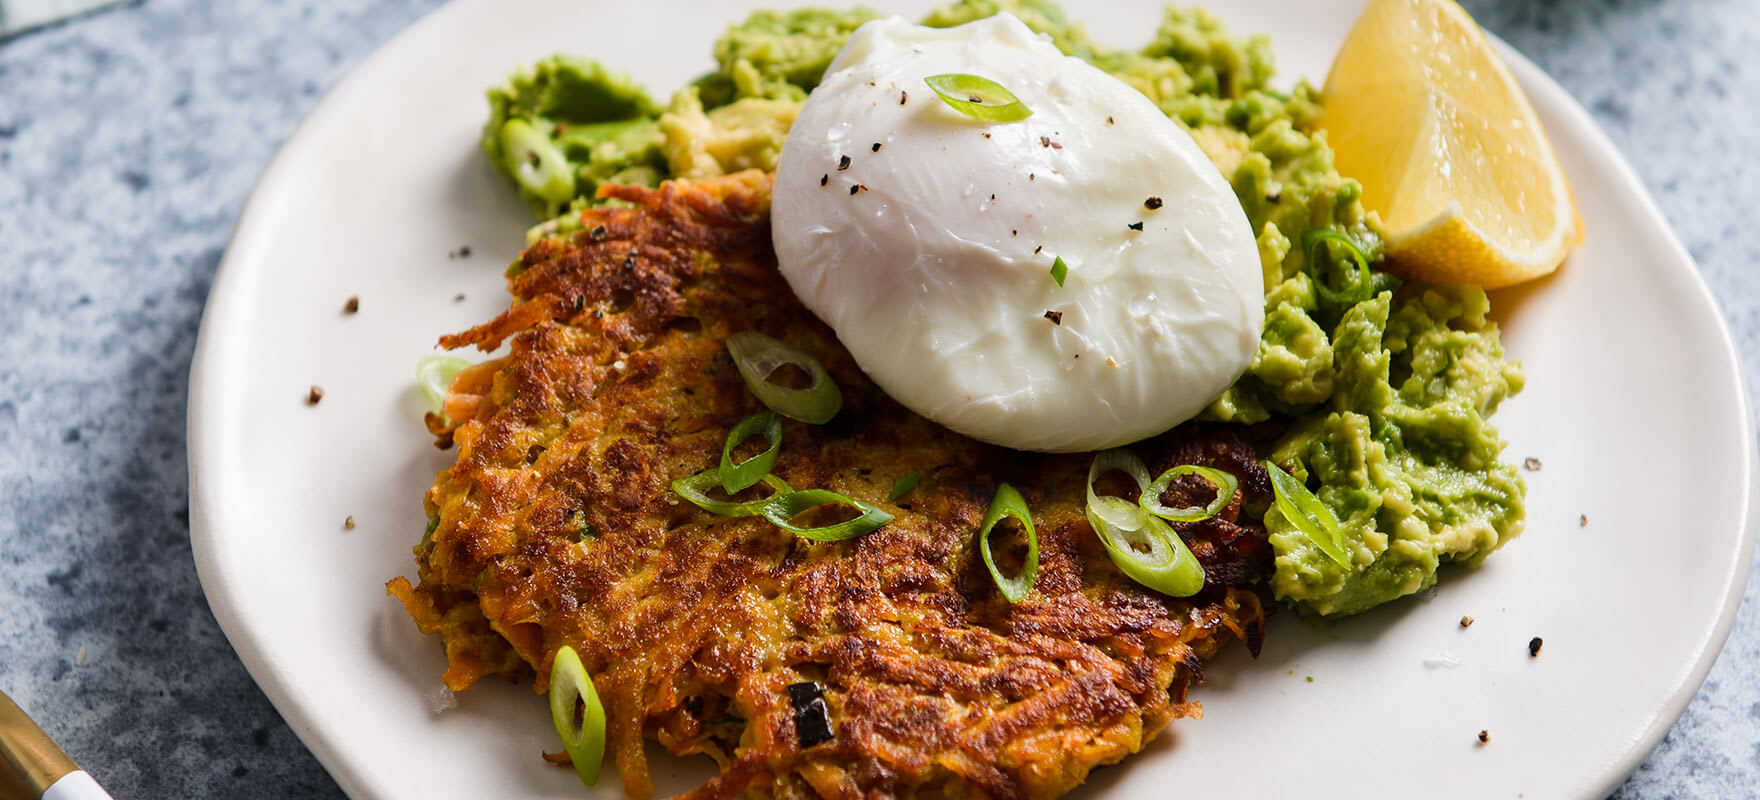 Sweet potato rosti image 2